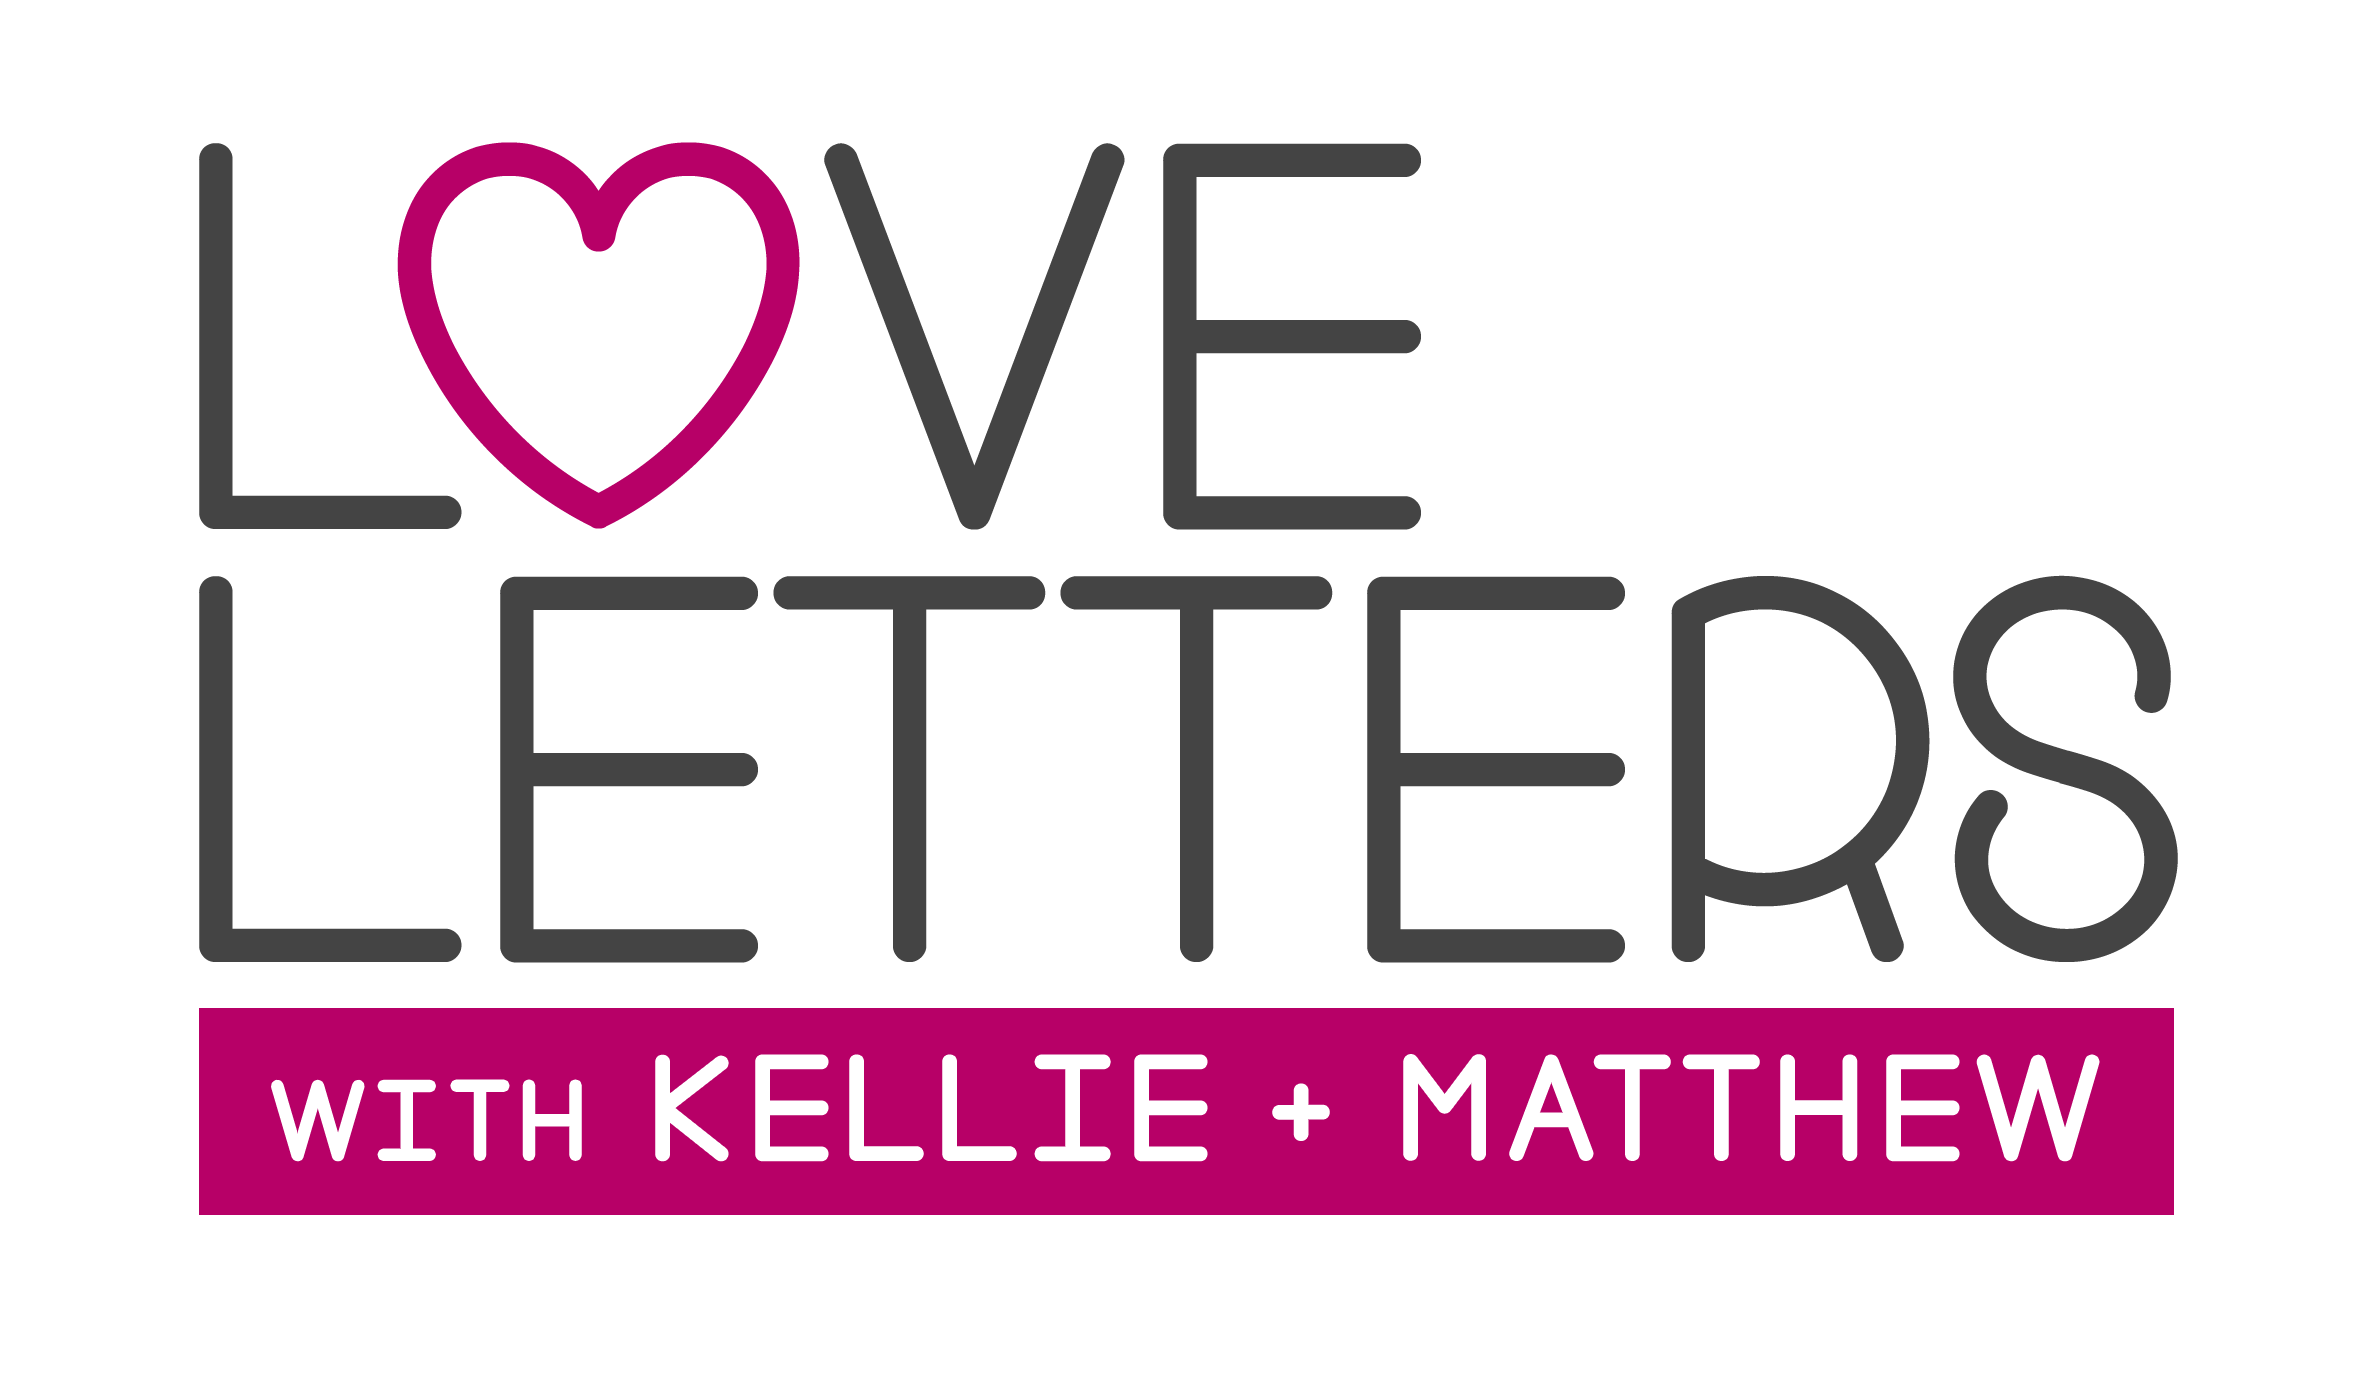 Love Letters with Kellie + Matthew